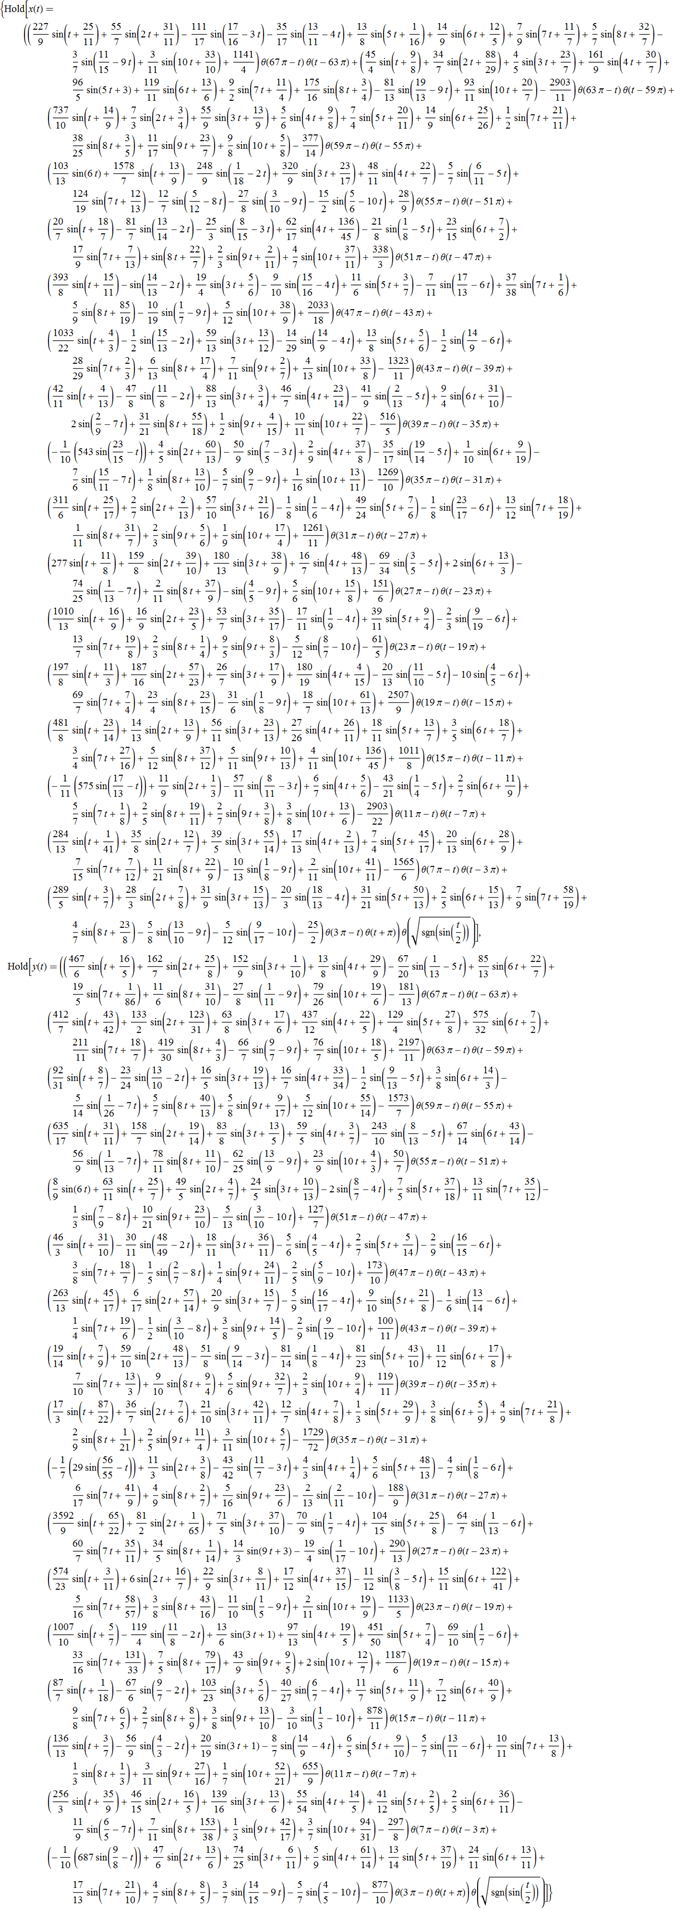 making-formulas-for-everything-from-pi-to-the-pink-panther-to-sir-isaac-newton_8.png